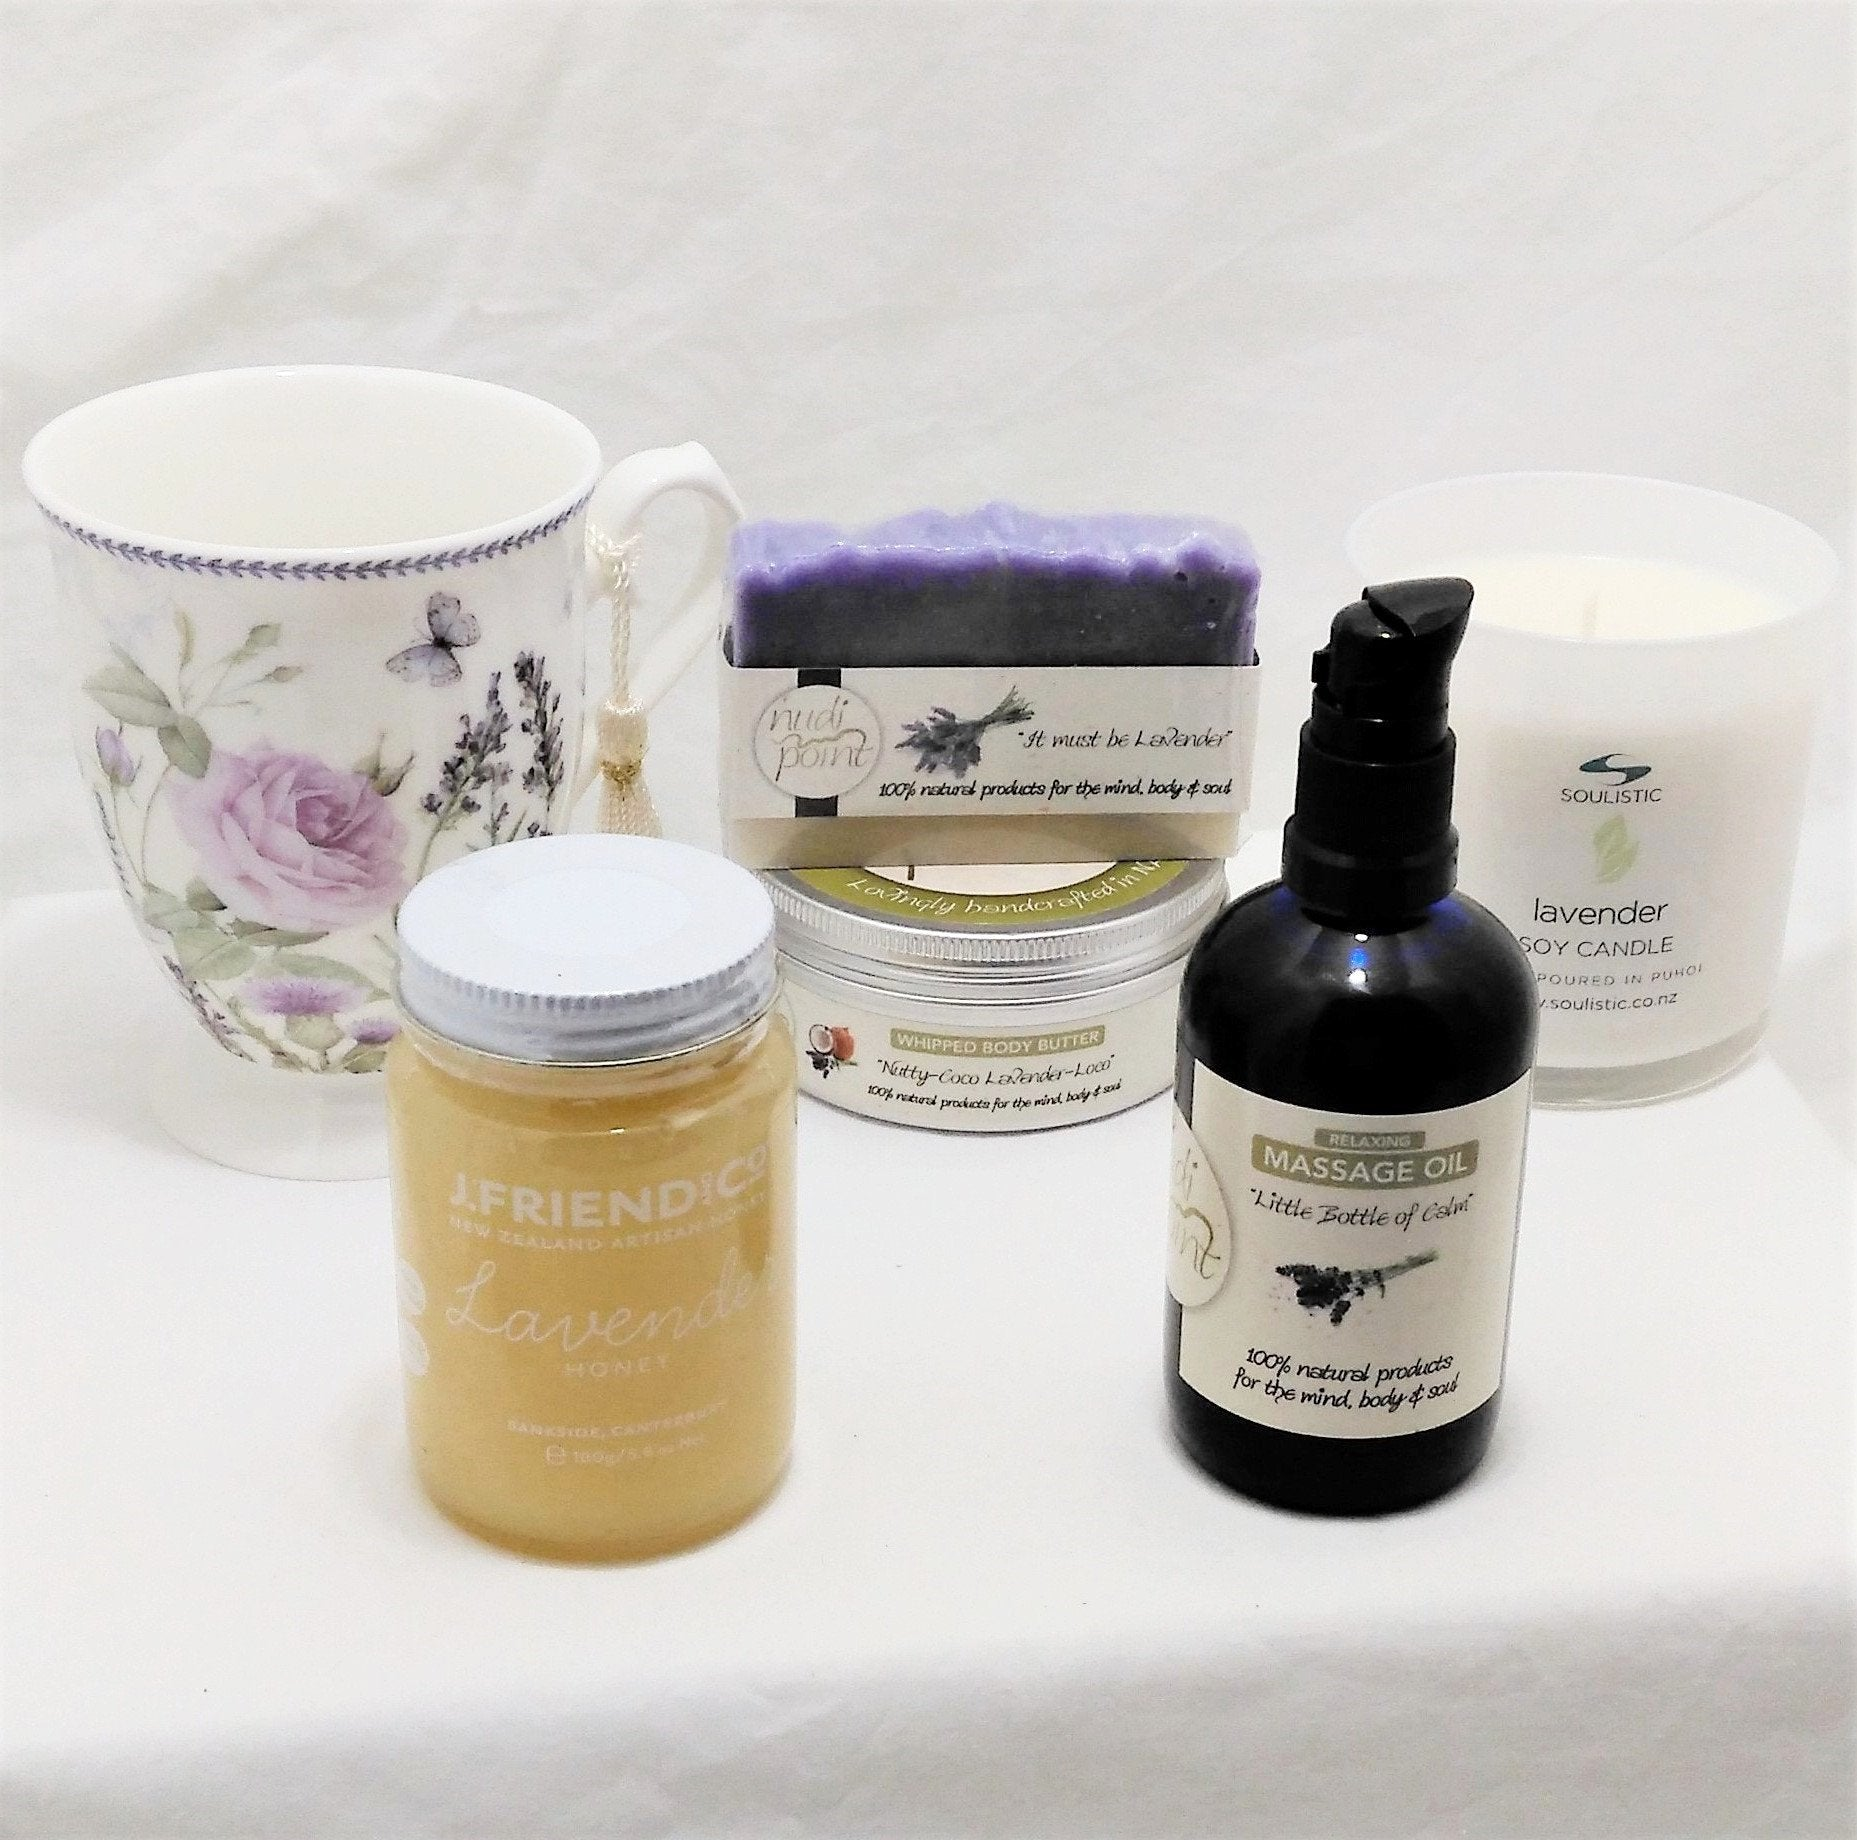 Lavender gift with beautiful lavender floral tea mug, lavender honey, lavender massage oil, body butter and soap and Soulistic lavender aromatherapy candle